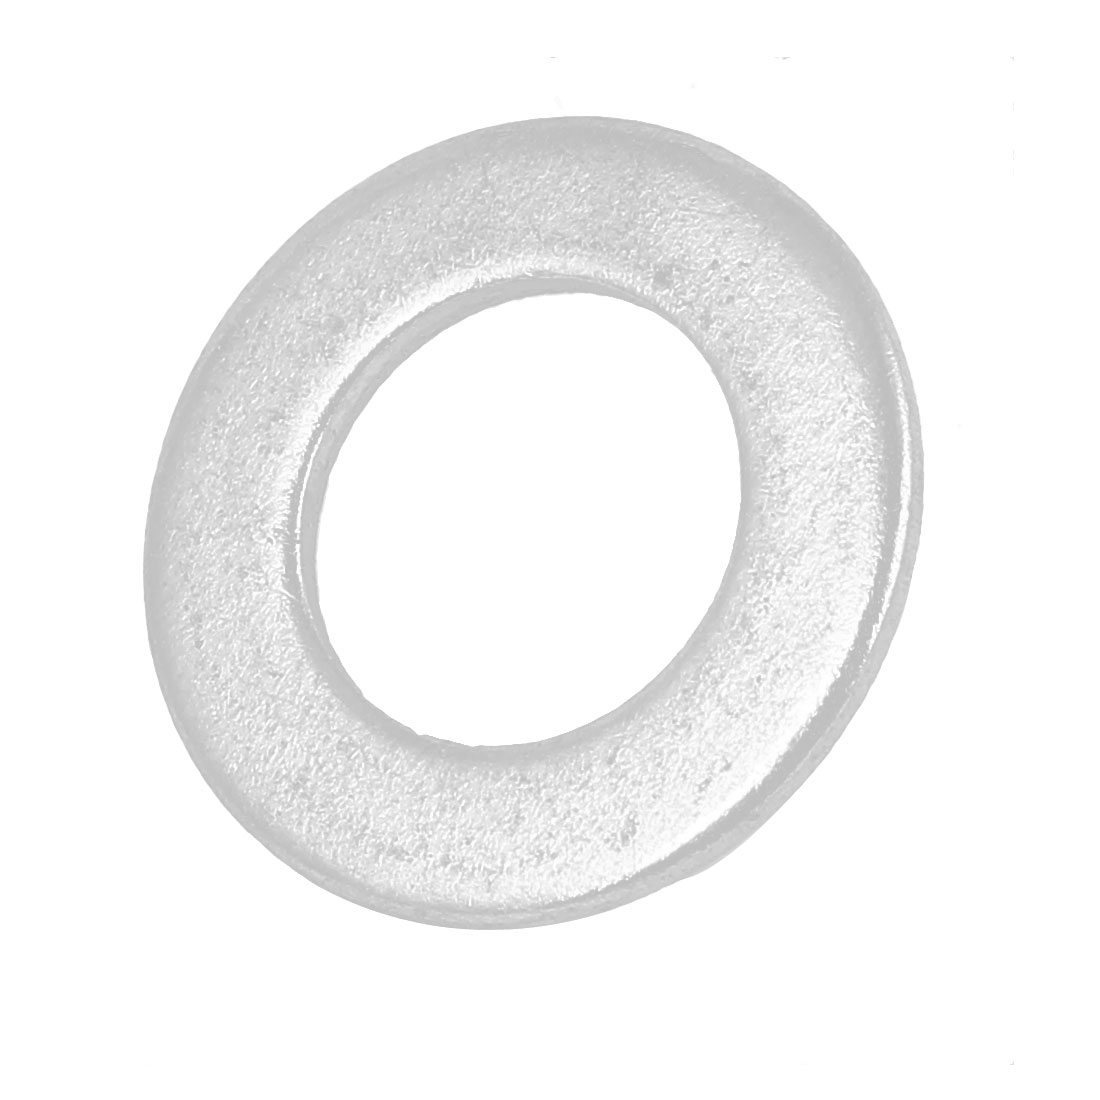 16mm x 30mm x 2.5mm Zinc Plated Flat Pad Washer Gasket Fastener GB97